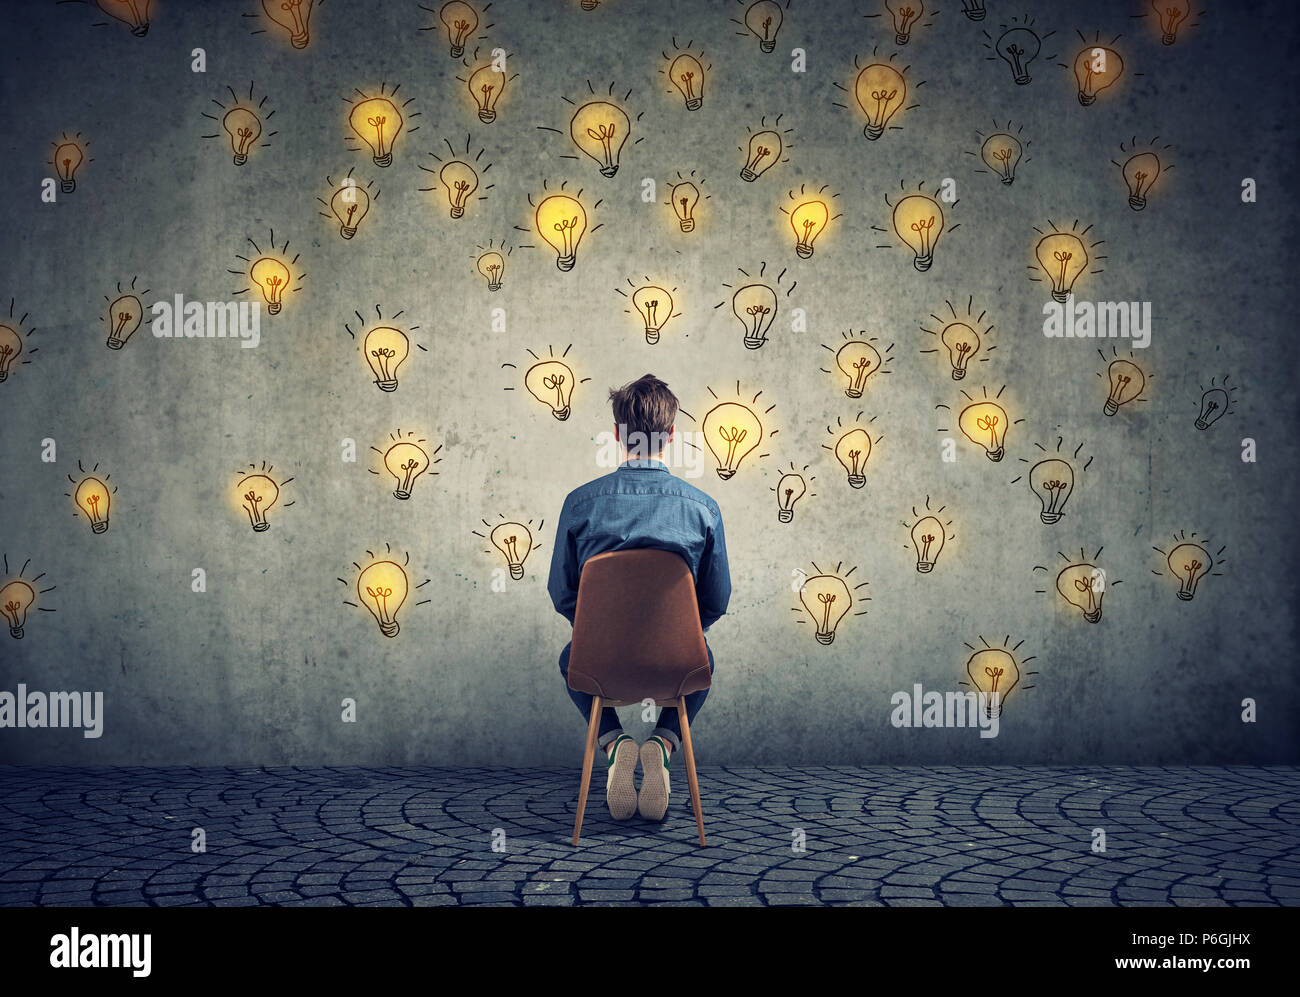 Man sitting on a chair has many bright ideas looking at wall making decisions - Stock Image